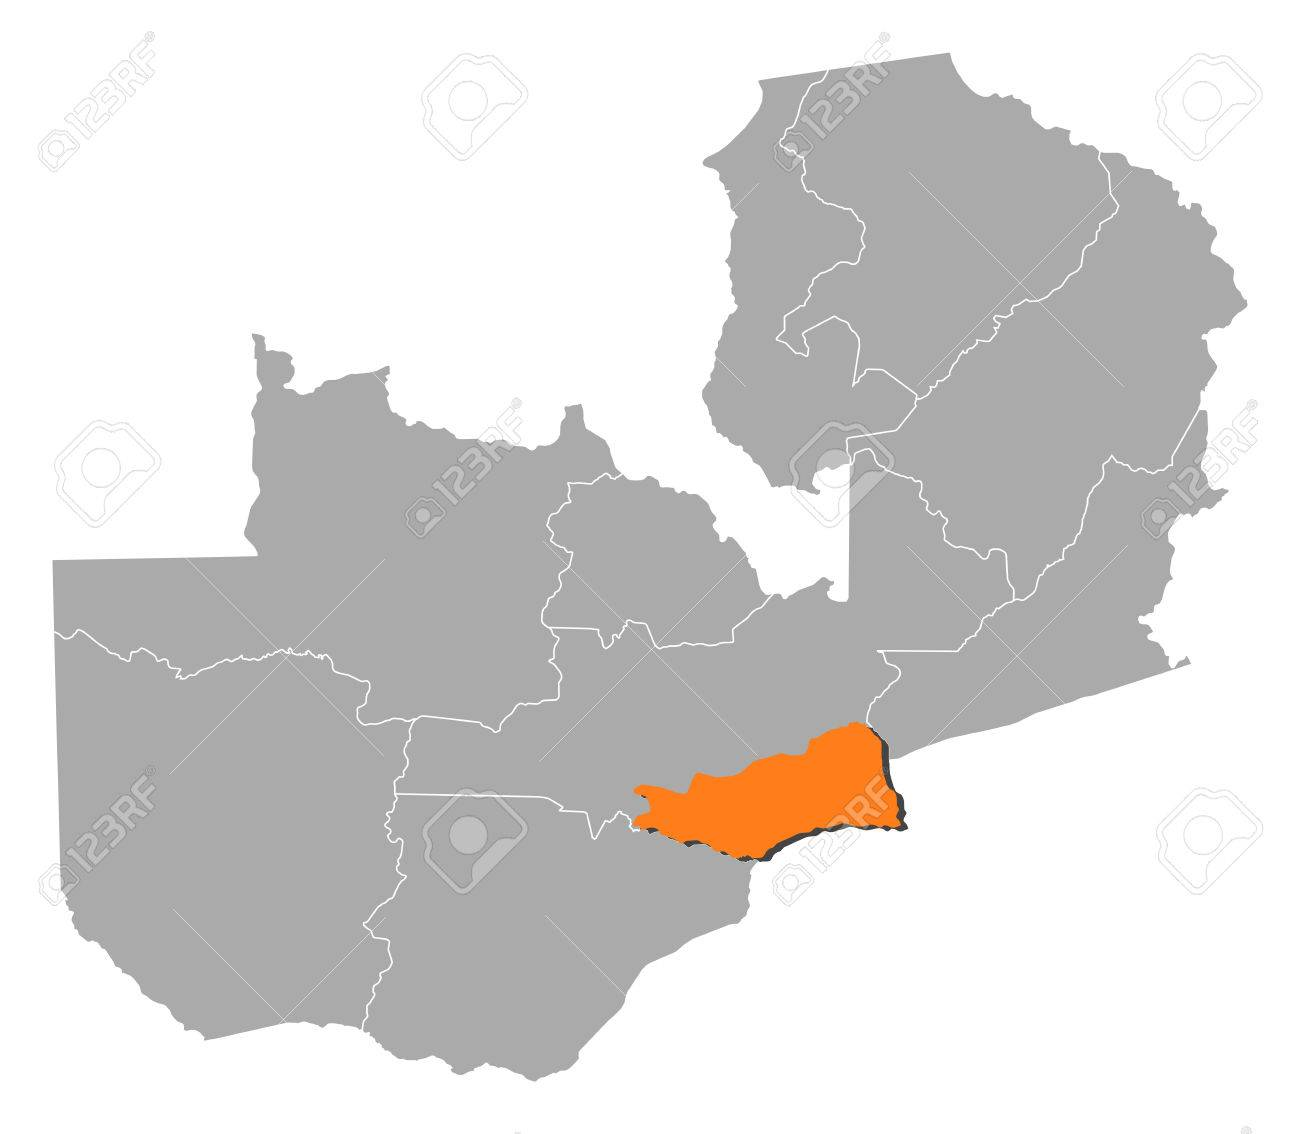 Map Of Zambia With The Provinces, Lusaka Is Highlighted By Orange ...